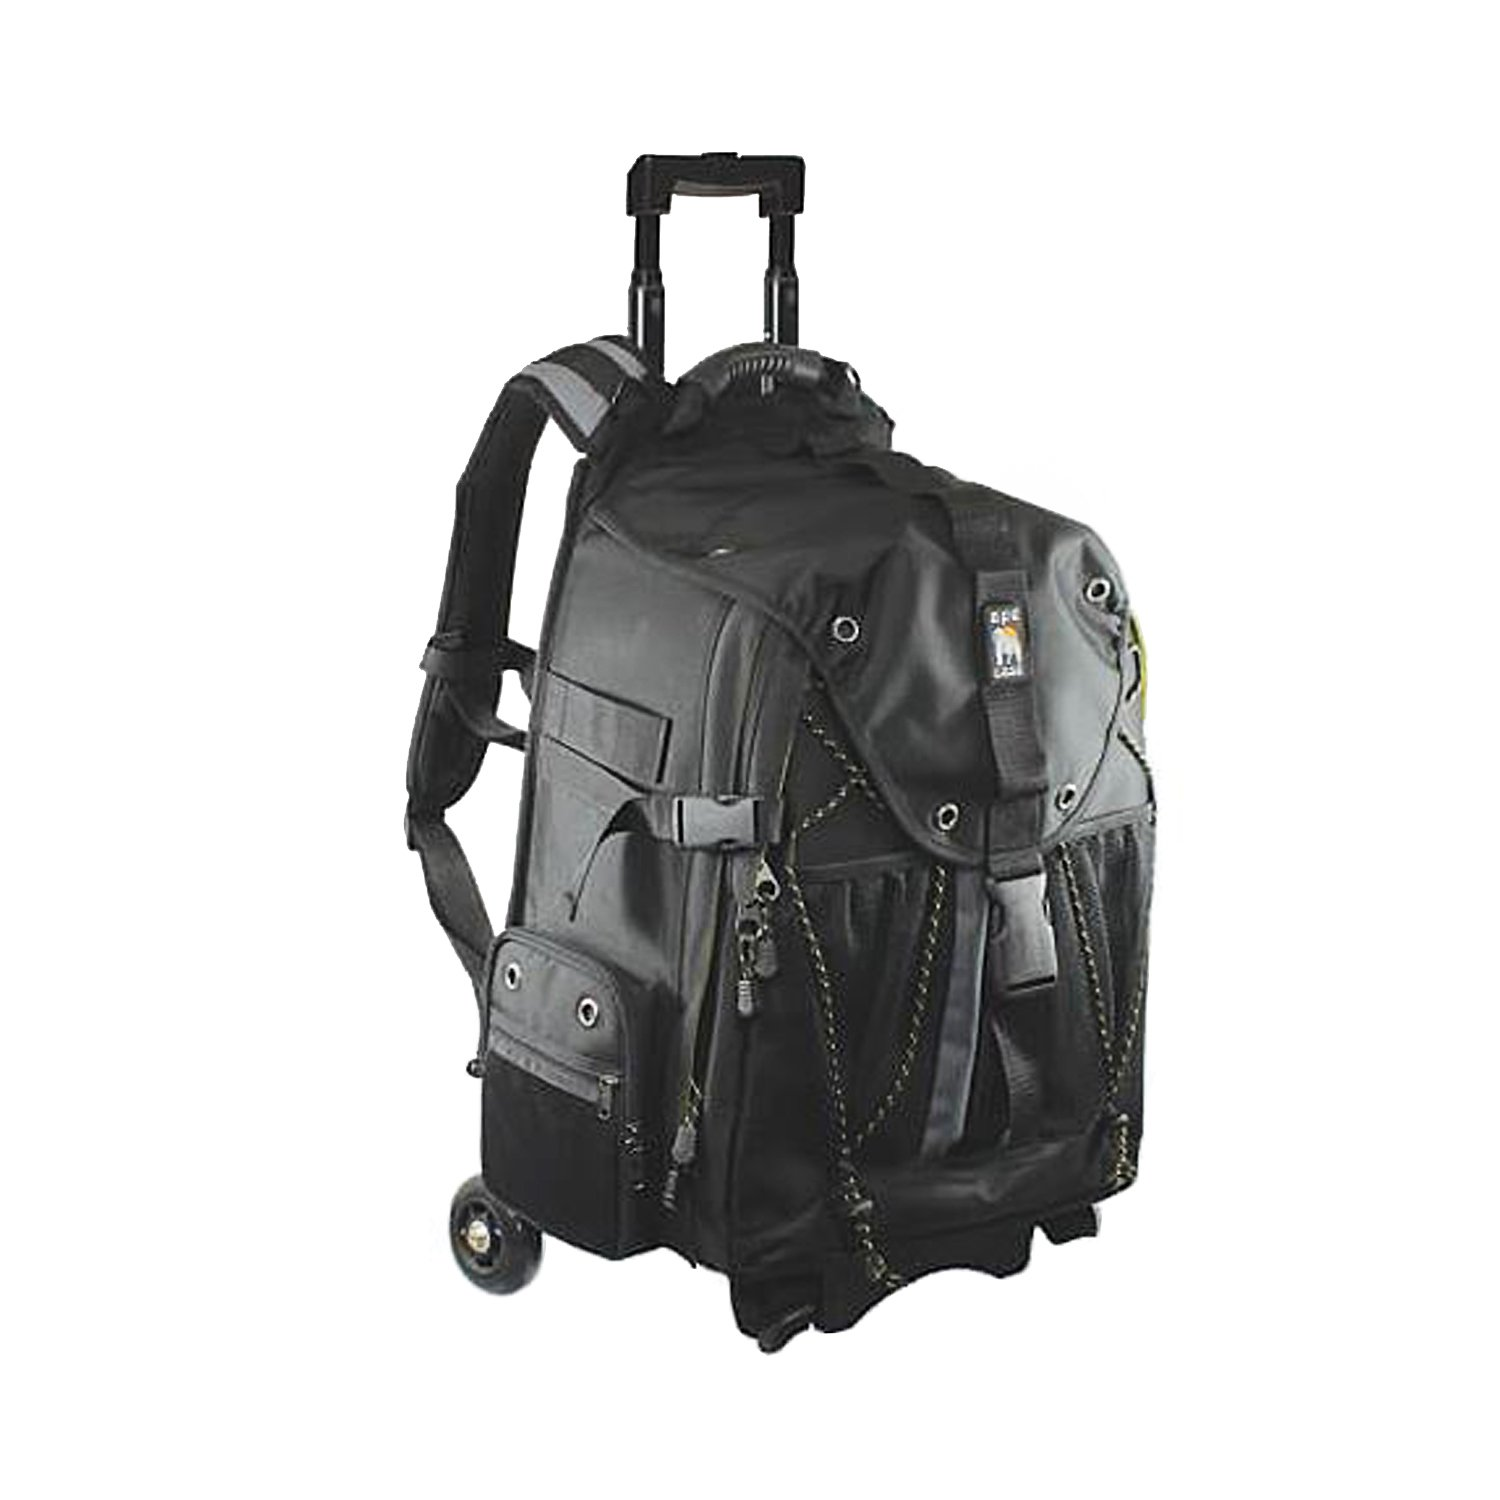 Ape Case, ACPRO4000, Backpack with wheels, Laptop compartment, Padded, Rain cover included, Adjustable straps, Camera backpack, Black (ACPRO4000) by Ape Case (Image #1)